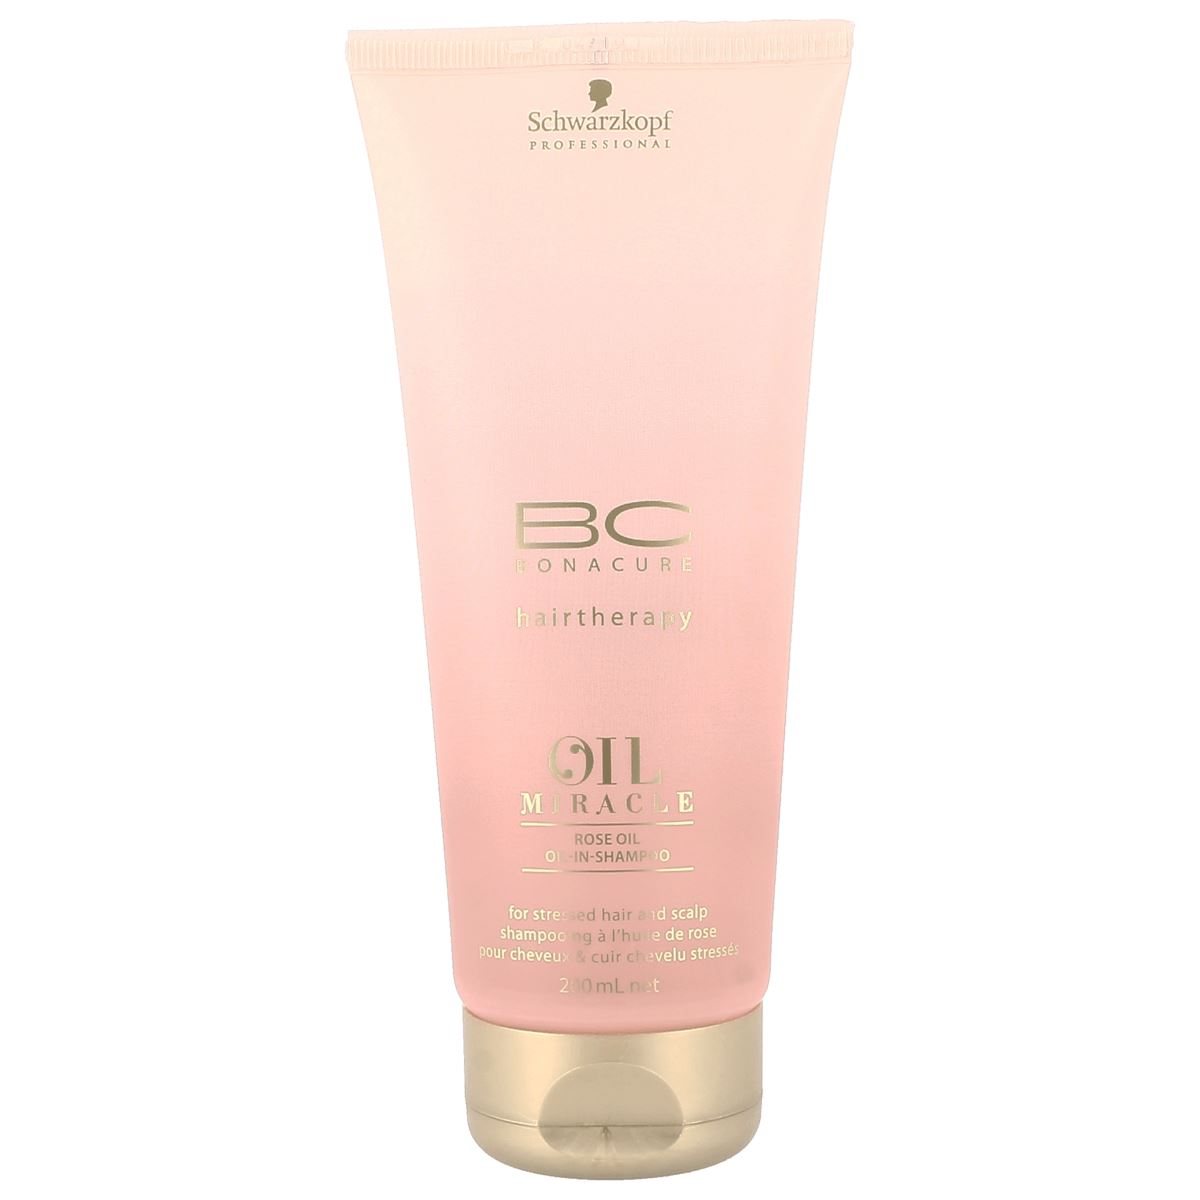 Schwarzkopf Professional BC Bonacure Oil Miracle Rose Oil-In-Shampoo - 200ml